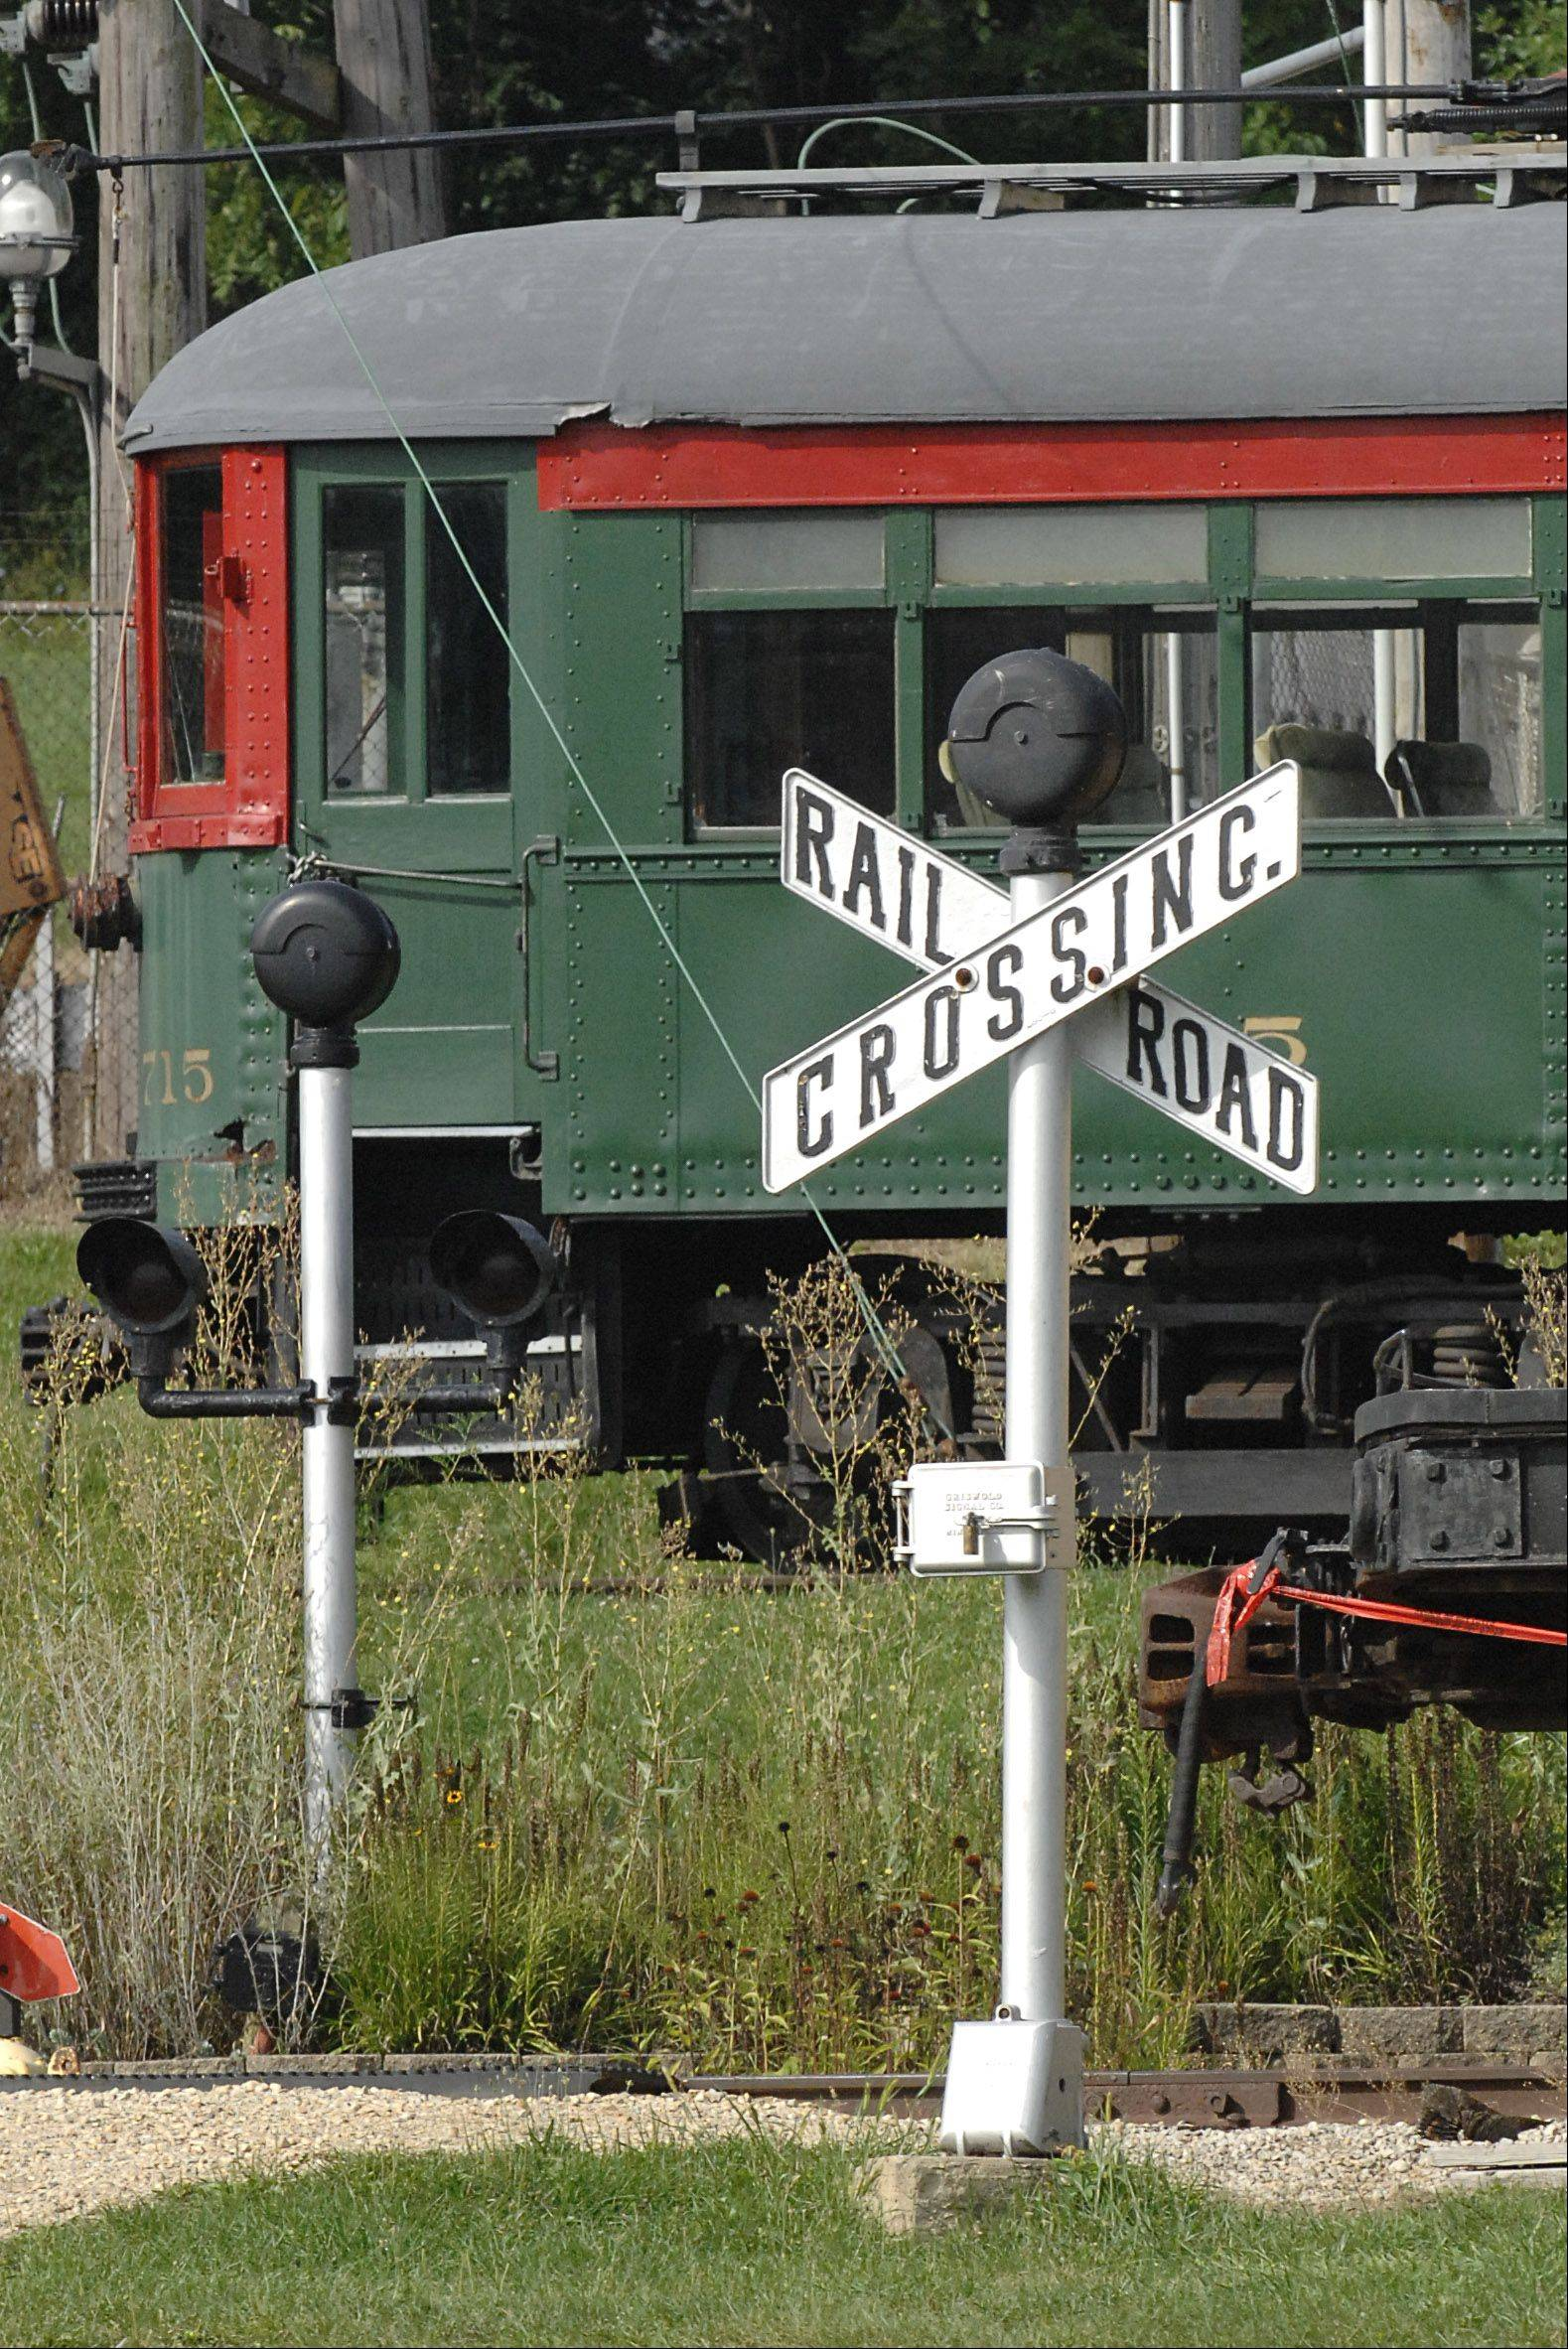 Hop on board a train at the Fox River Trolley Museum in South Elgin this weekend for a living history event.